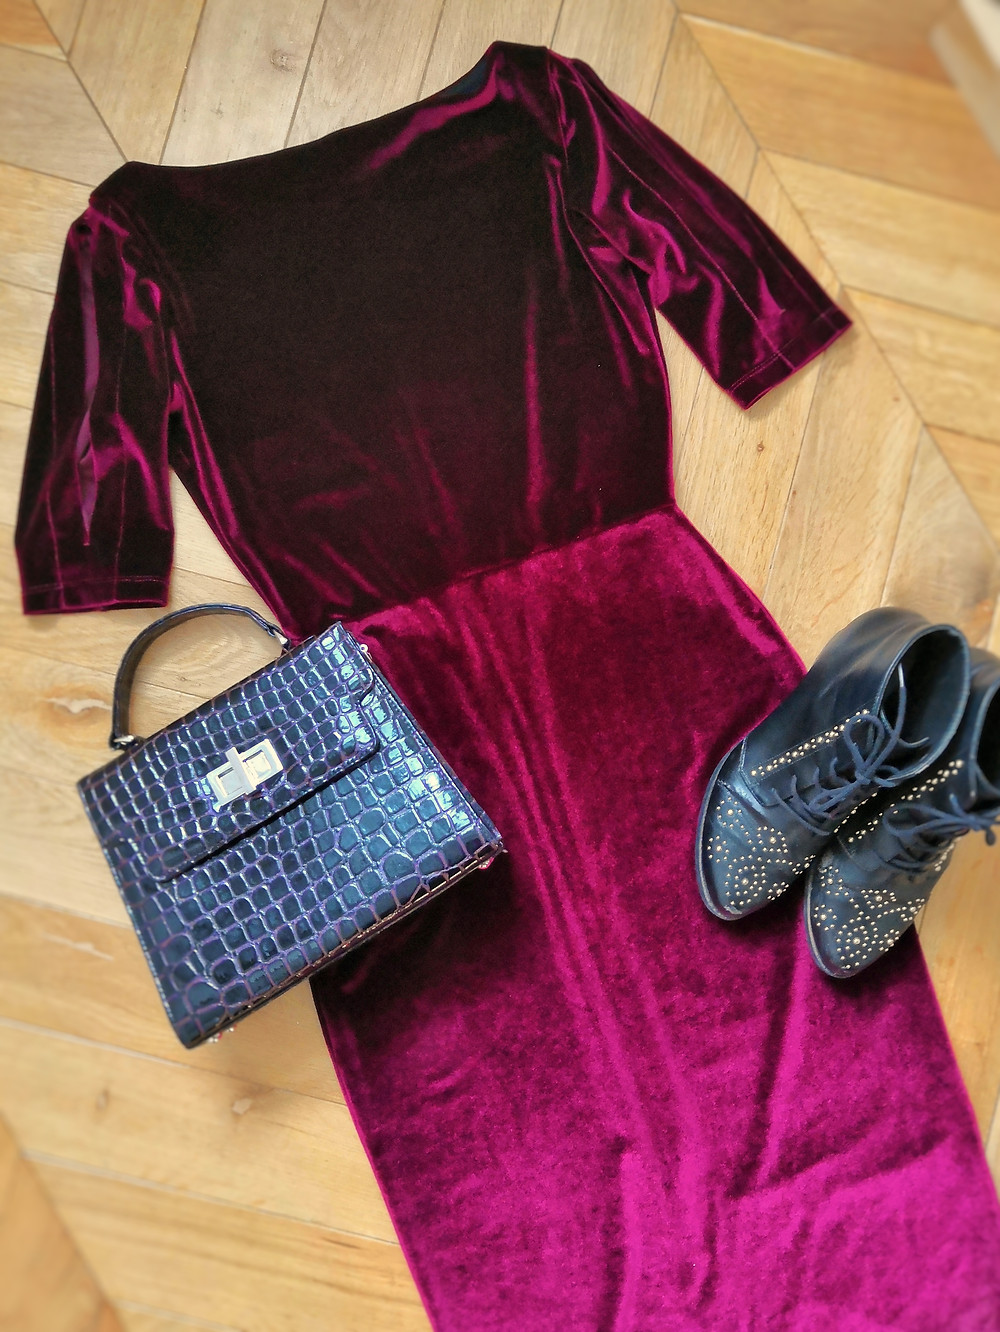 Vintage inspired flatlay outfit with velvet dress, boots and bag